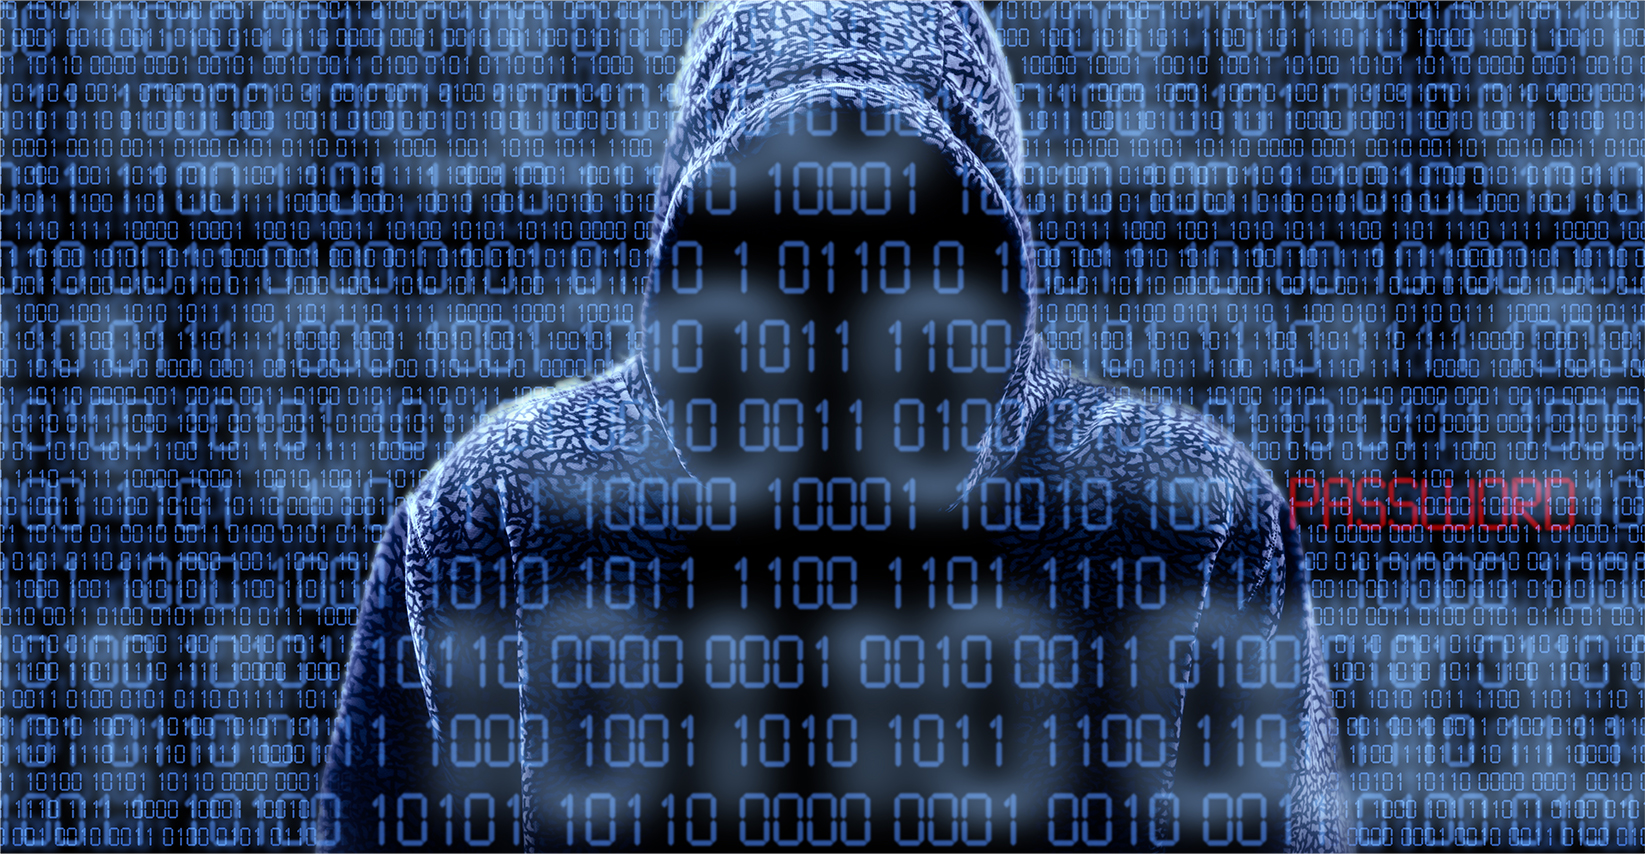 Silhouette of a hacker isloated on black — Stock Photo Silhouette of a hacker isloated on black with binary codes on background